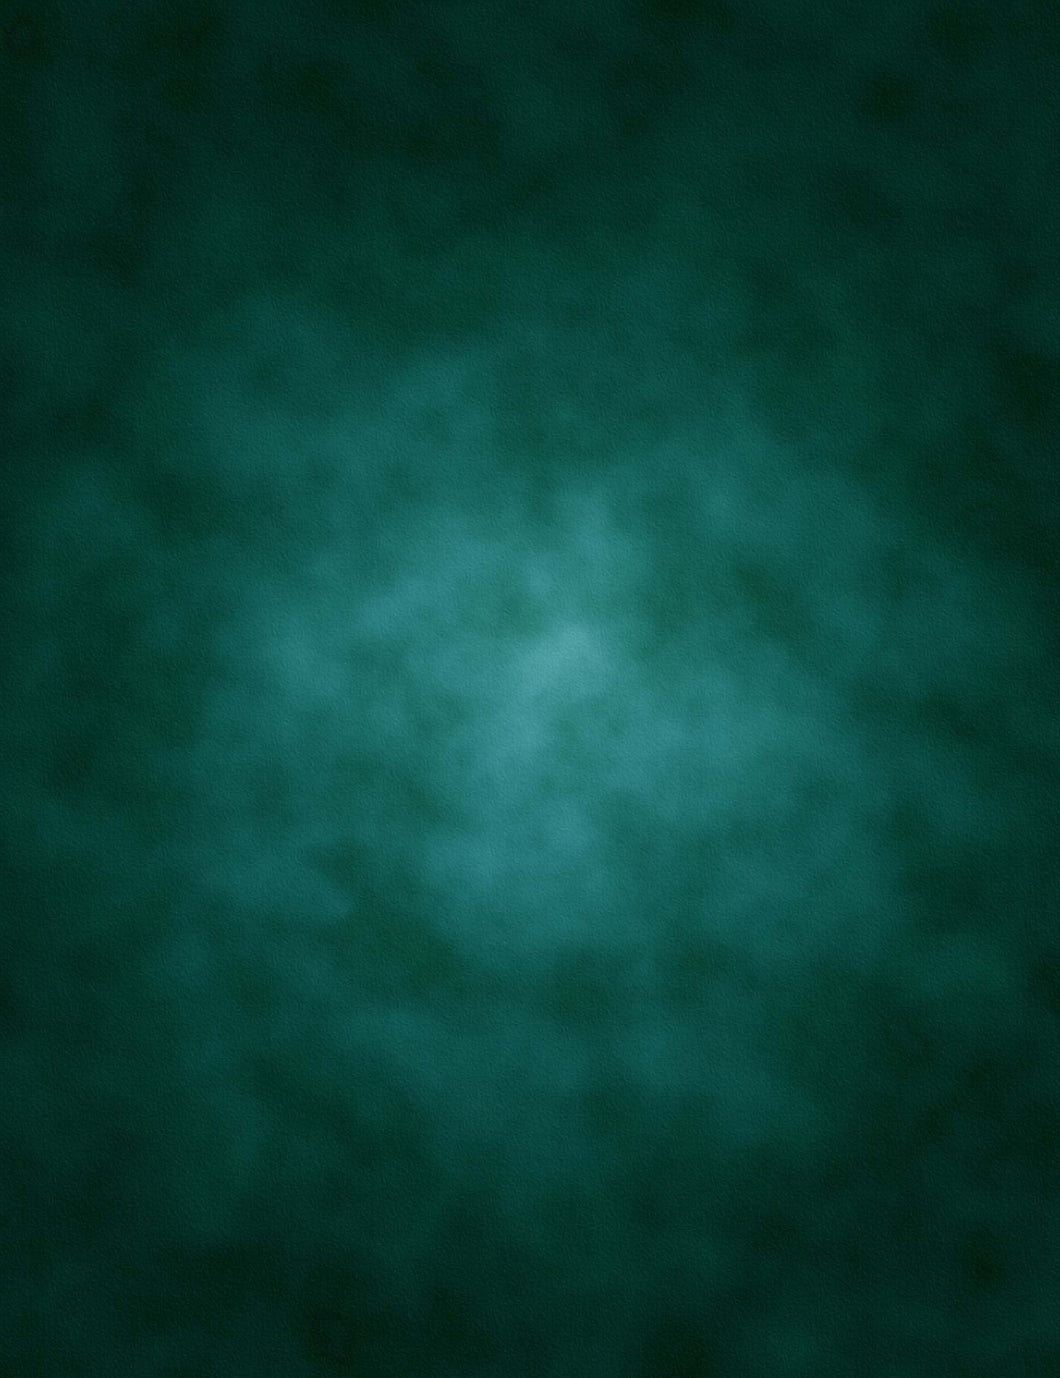 Dark Green Texture Light In Center Dark Old Master Backdrop - Shop Backdrop